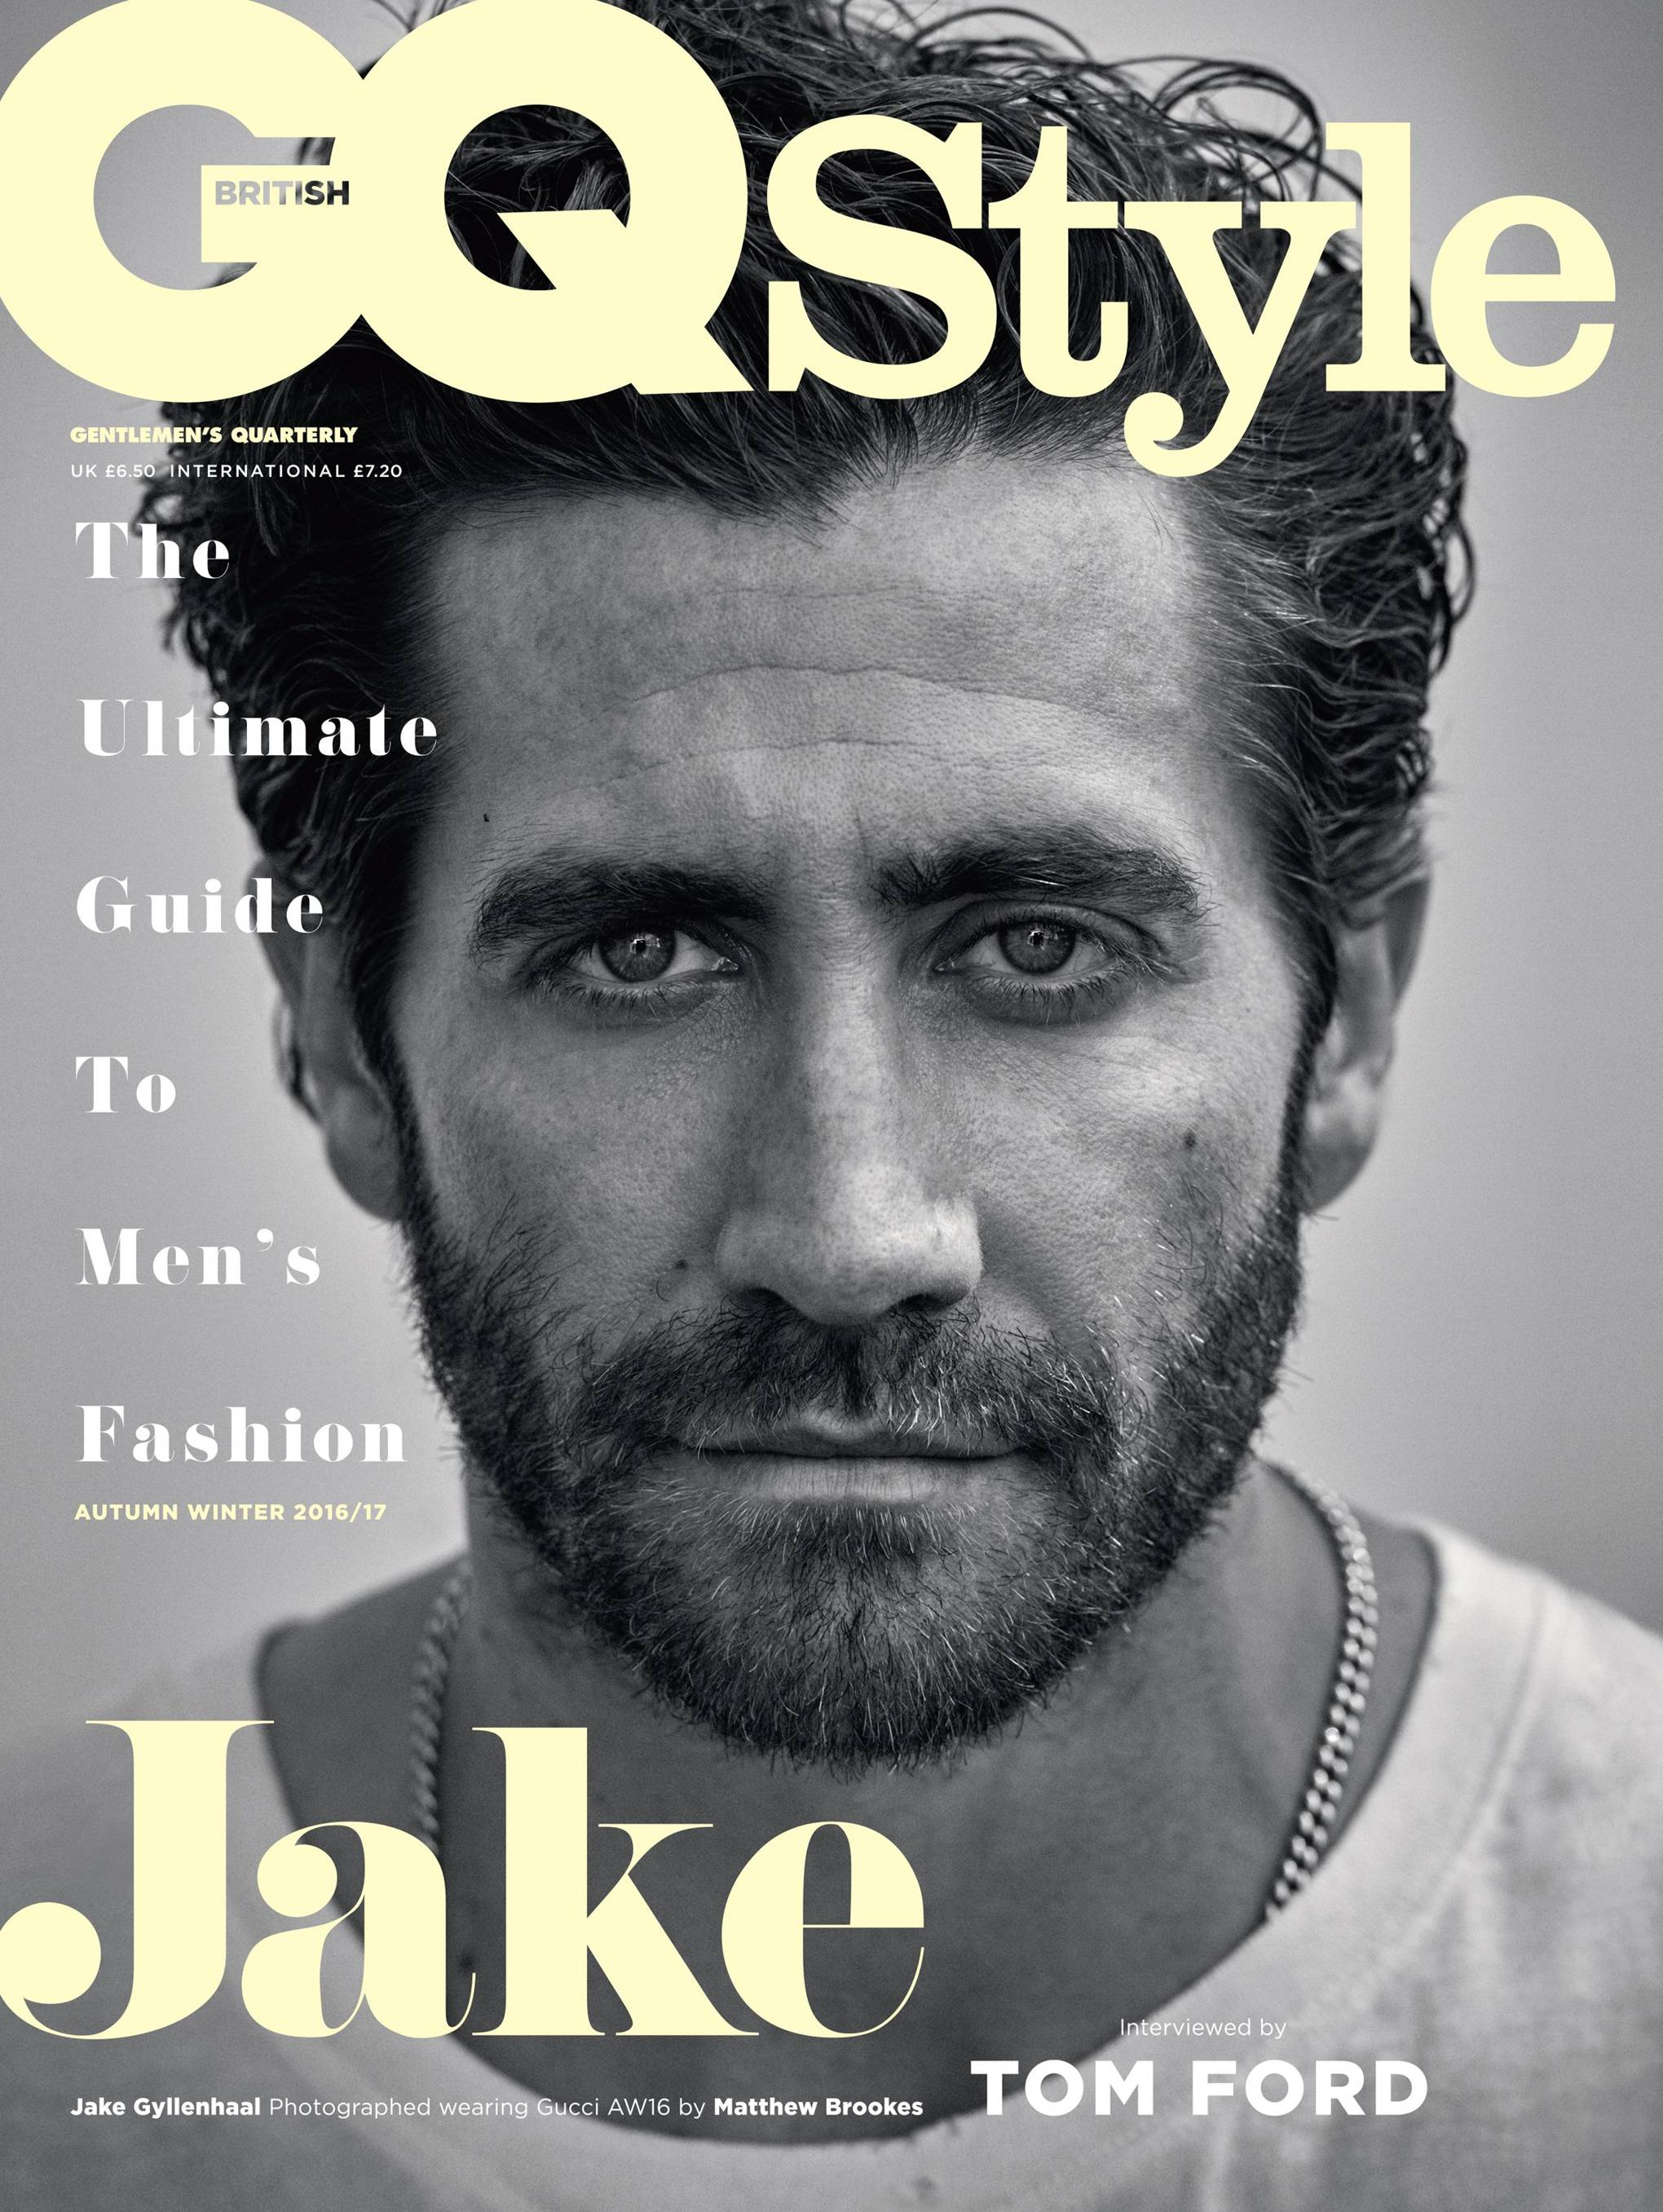 Jake Gyllenhaal And Tom Ford Are The Leading Men Of Gq Style Autumn